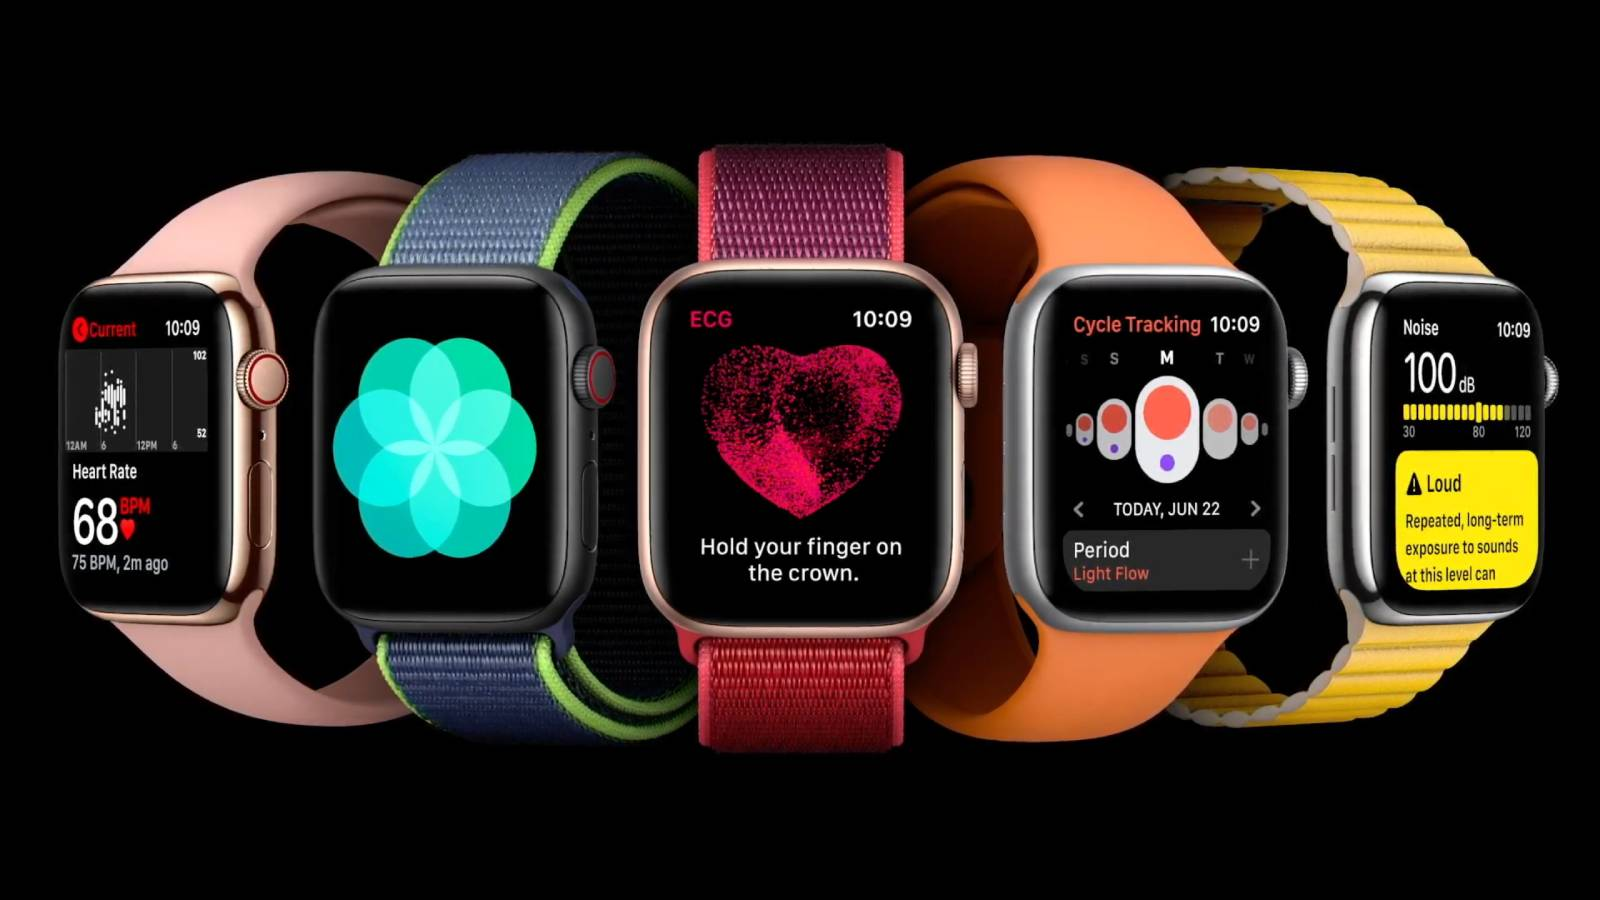 Apple Watch 7: Release date, price, features and leaks